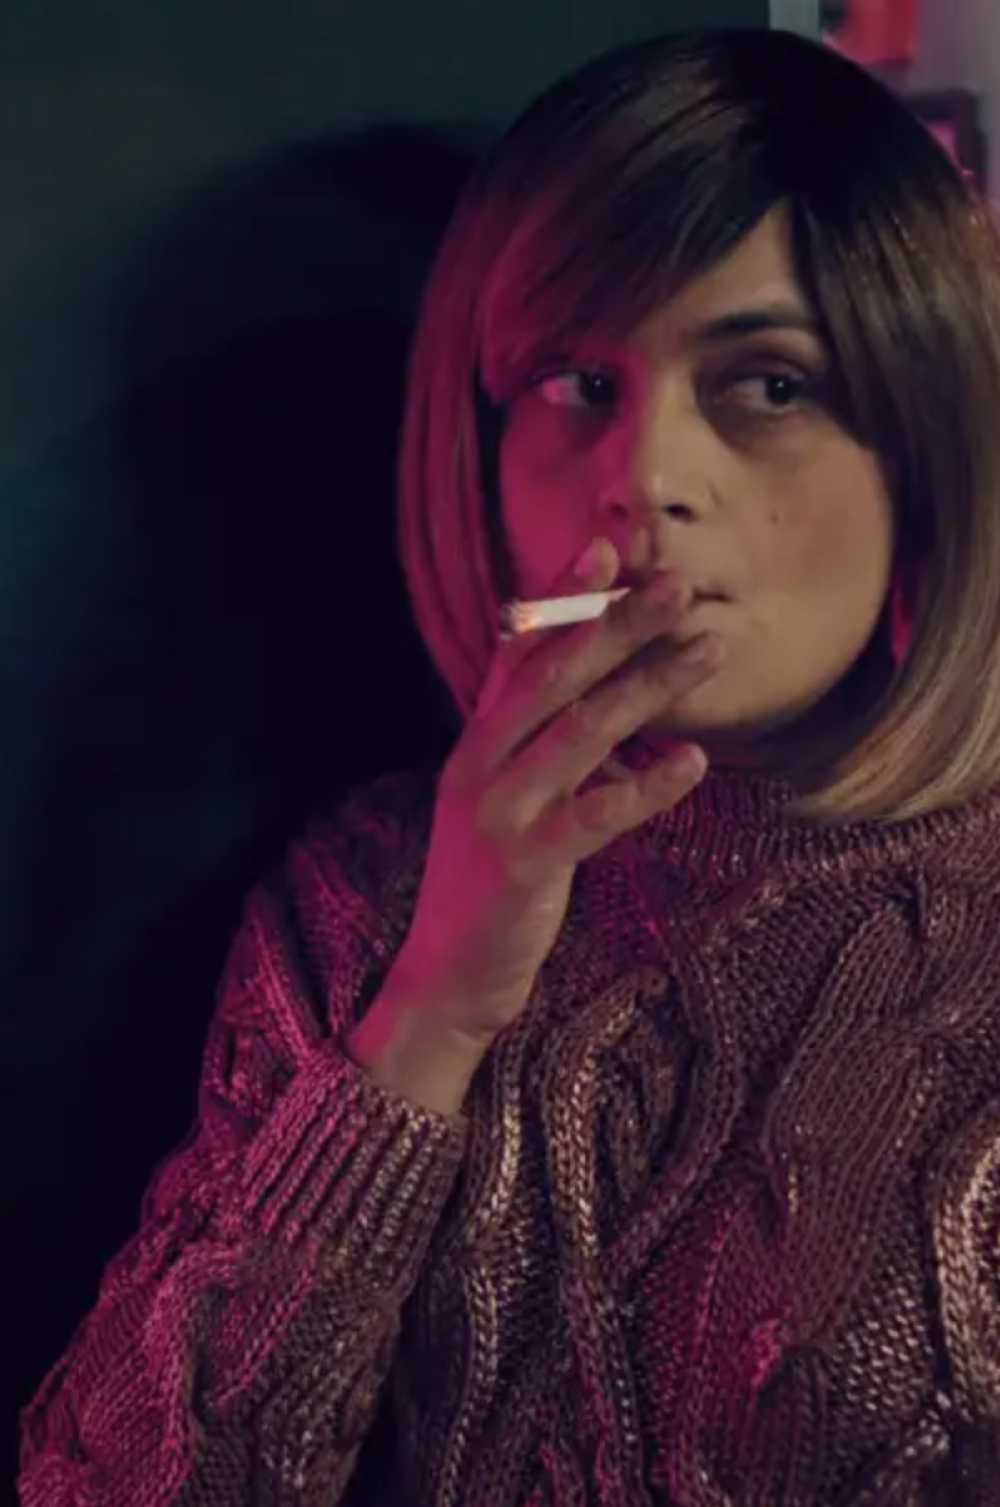 Girl drenched in pink light smokes a cigarette tentatively. Image from the film One Way Glass, produced by Lunar Dragon Productions.